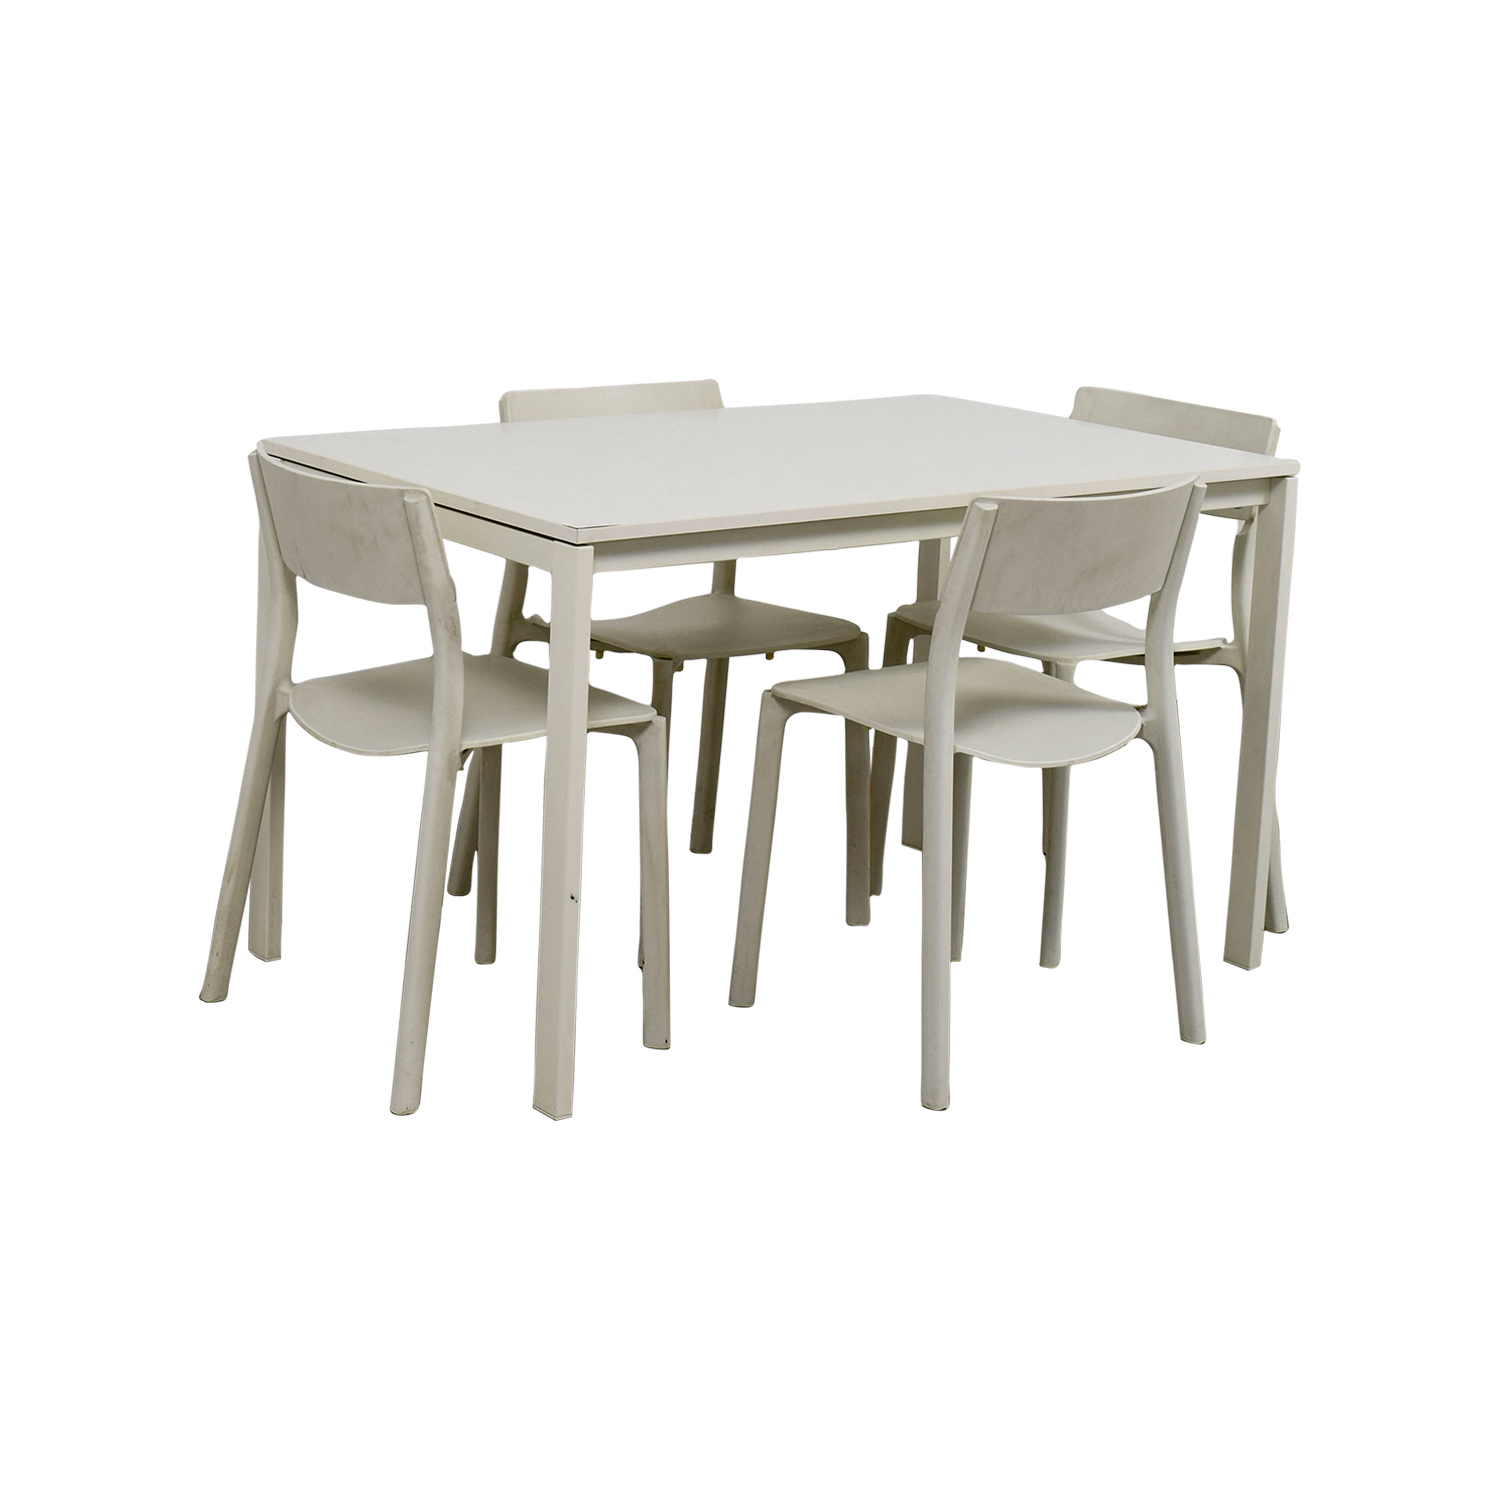 65 off ikea ikea white kitchen table and chairs tables for Kitchen table and chairs